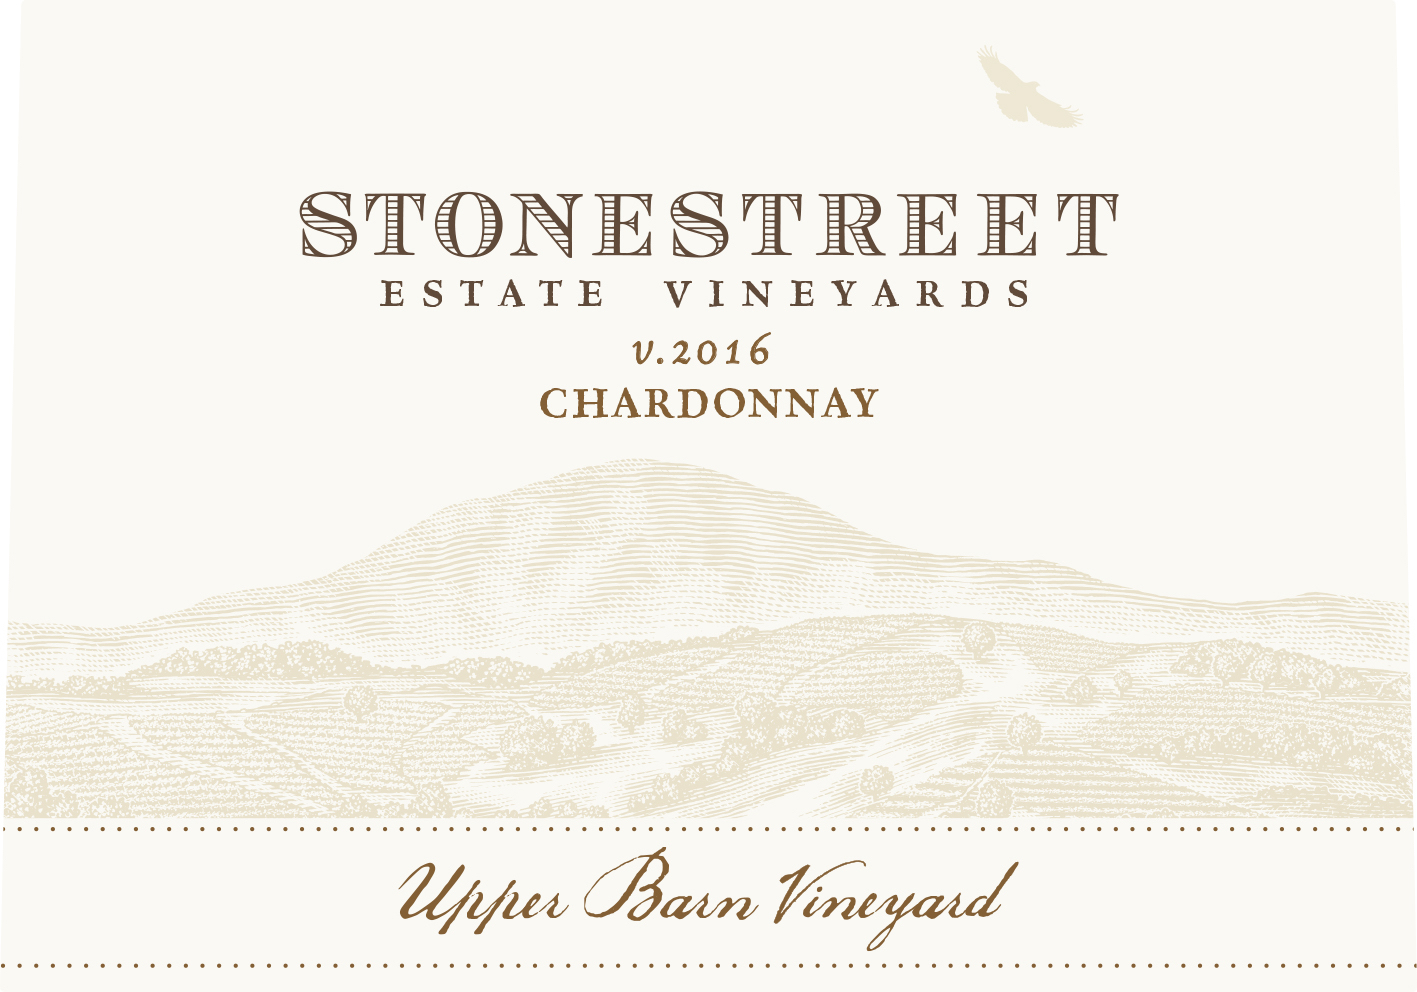 Stonestreet Chardonnay Upper Barn Vineyard